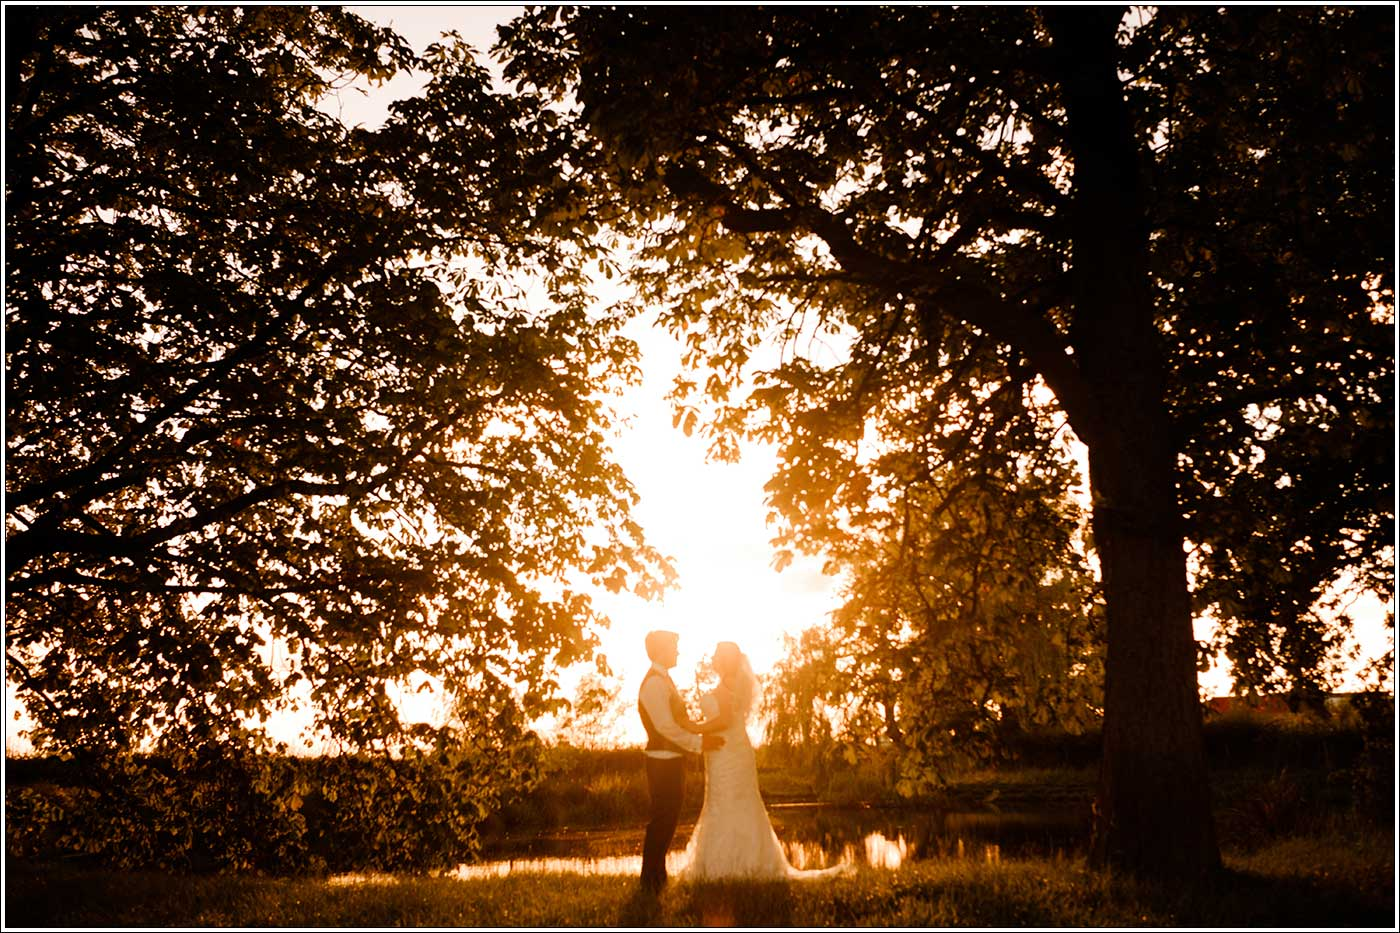 Groom and bride under a tree at Park Hall Farm during the golden hour sunlight